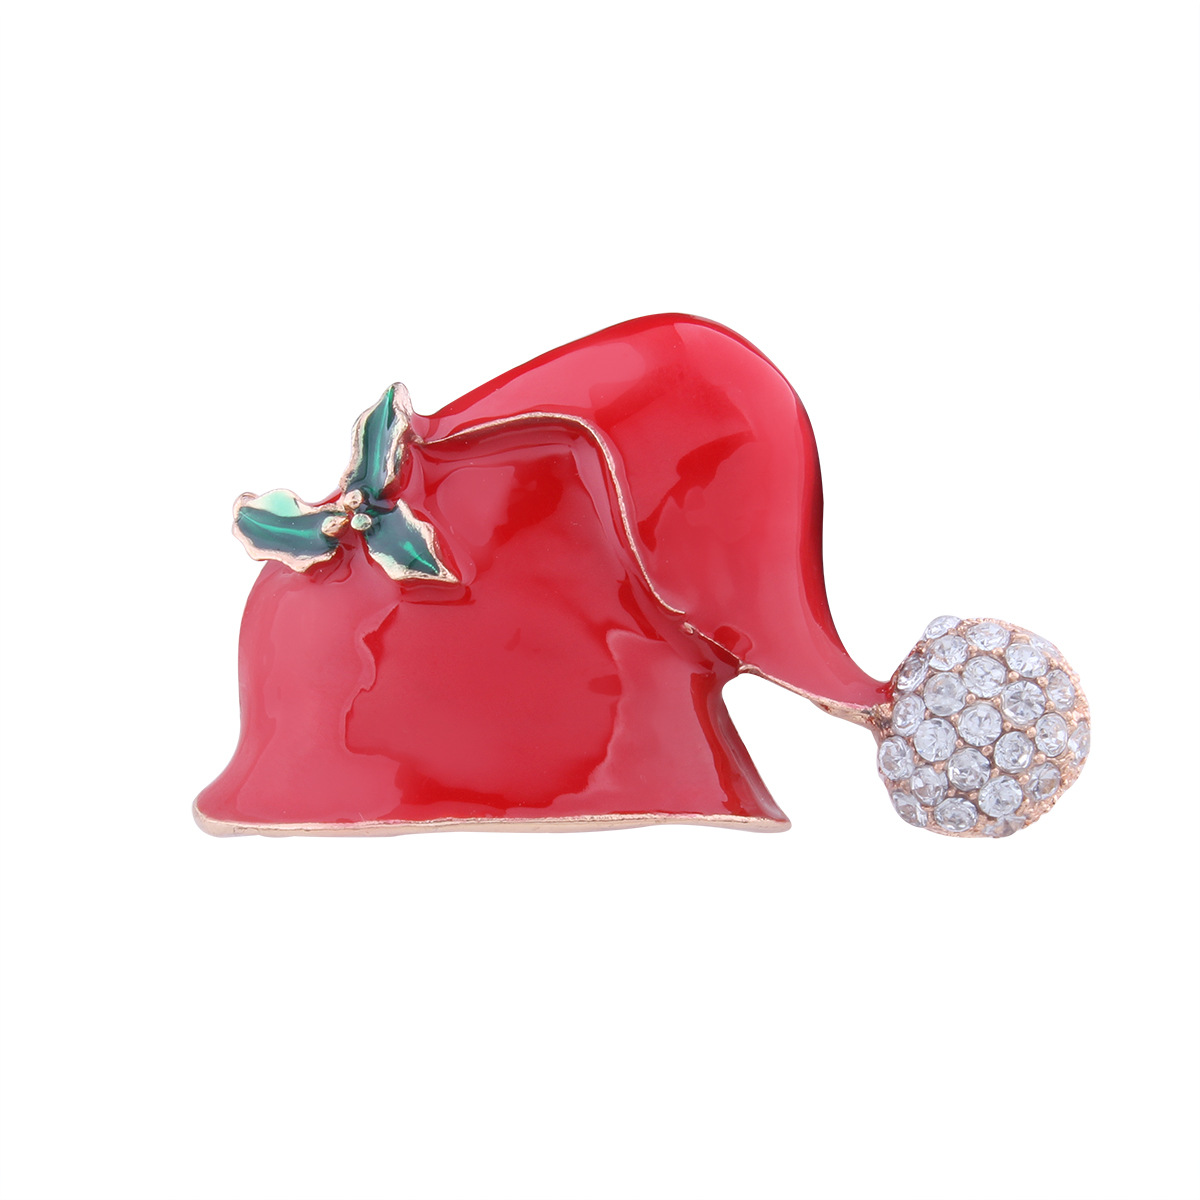 Occident and the United States alloy Diamond brooch (Christmas hat)NHNMD3842-Christmas hat